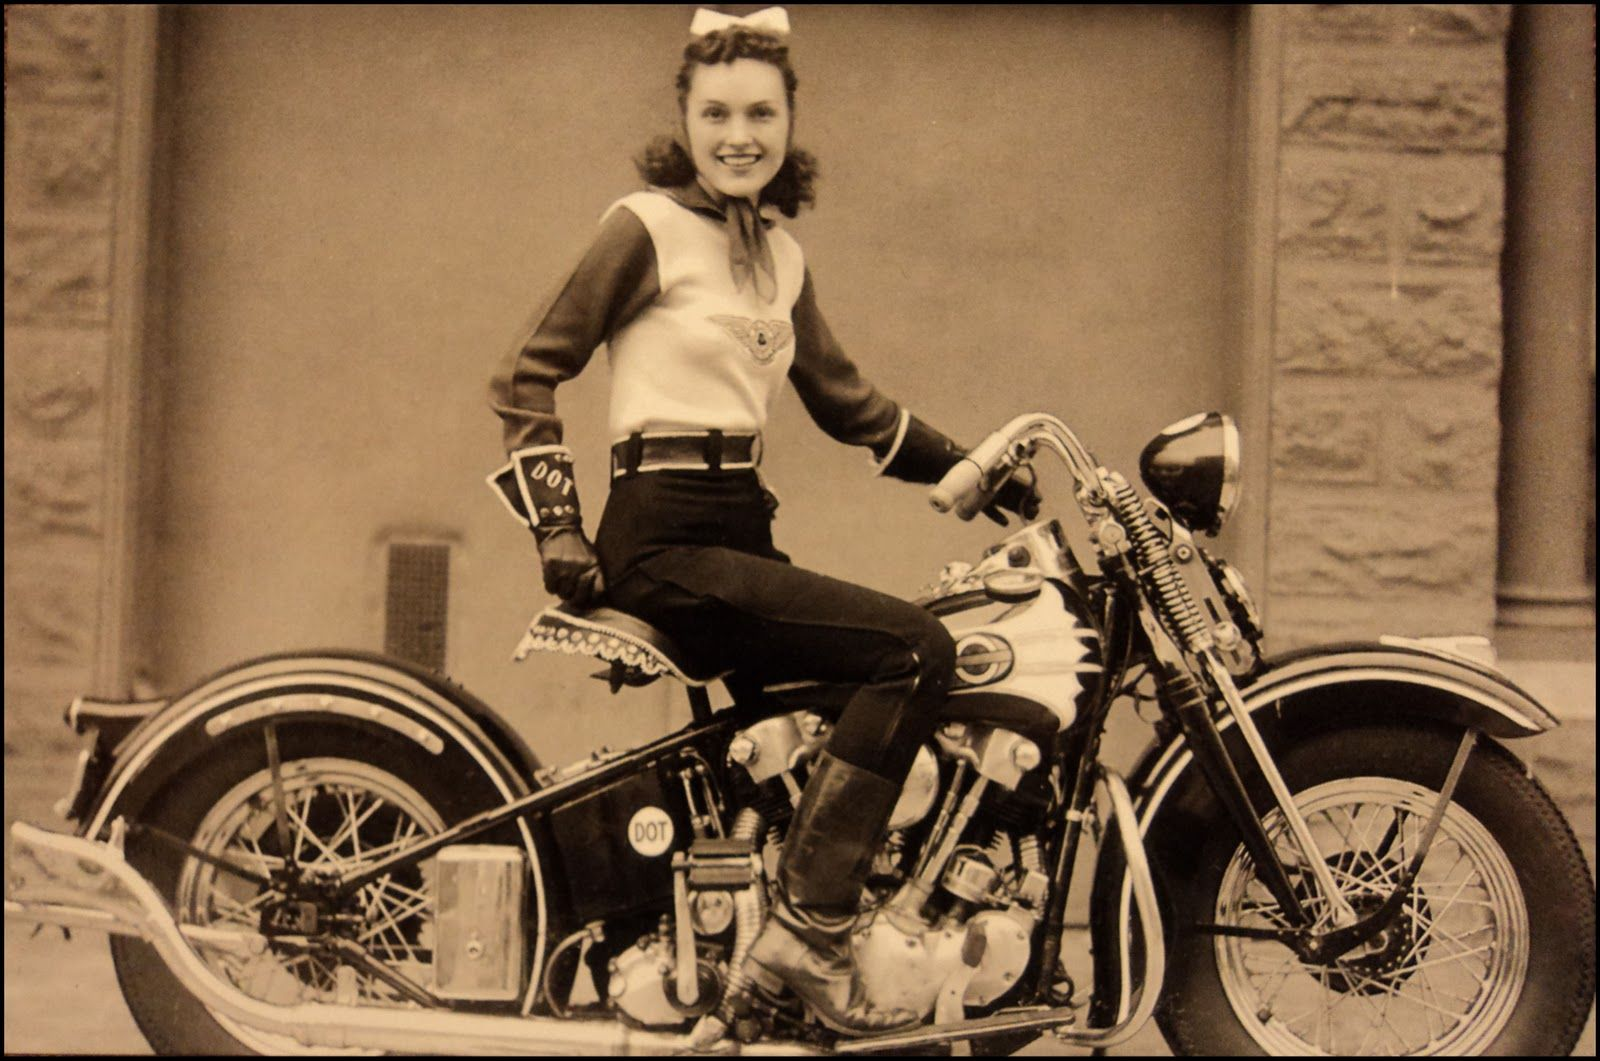 """This is Dot Smith, the famous female stunt rider from the 1930s and 40s, she was a member of the San Francisco Motorcycle Club and a founding member of the iconic """"Motor Maids"""" with Dot Robinson and Linda Degeau.    In this photograph she's sitting on her 1937 EL Knucklehead and looking damn near perfect with that little ribbon in her hair. They just don't make 'em like they used to"""